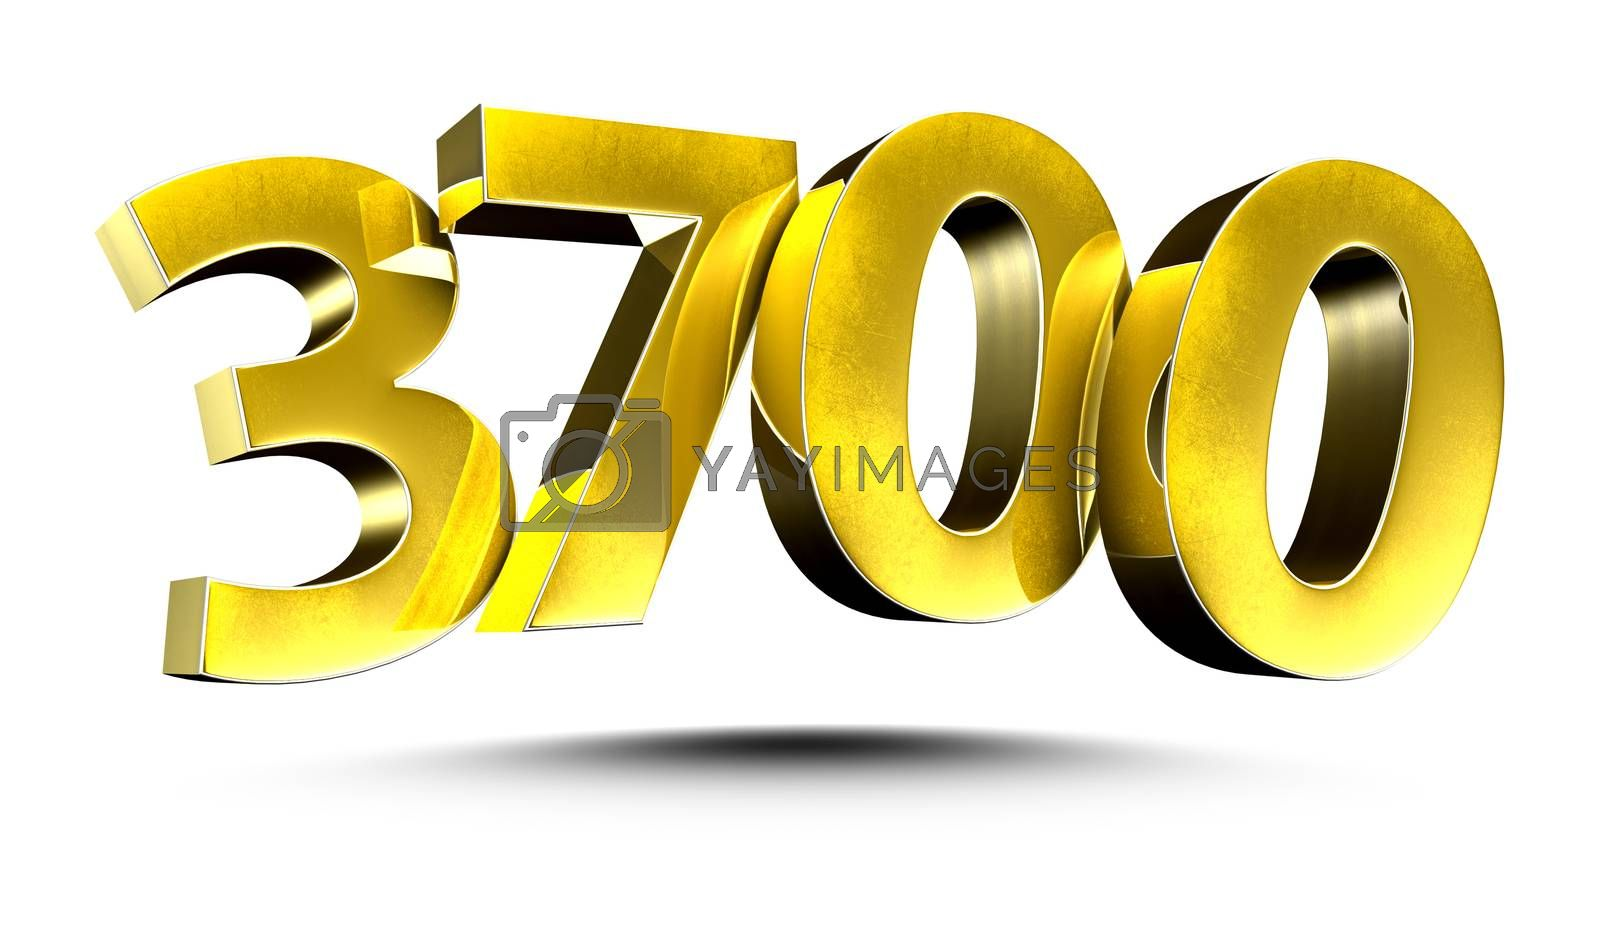 3D illustration Numbers 3700 Gold isolated on a white background.(with Clipping Path)